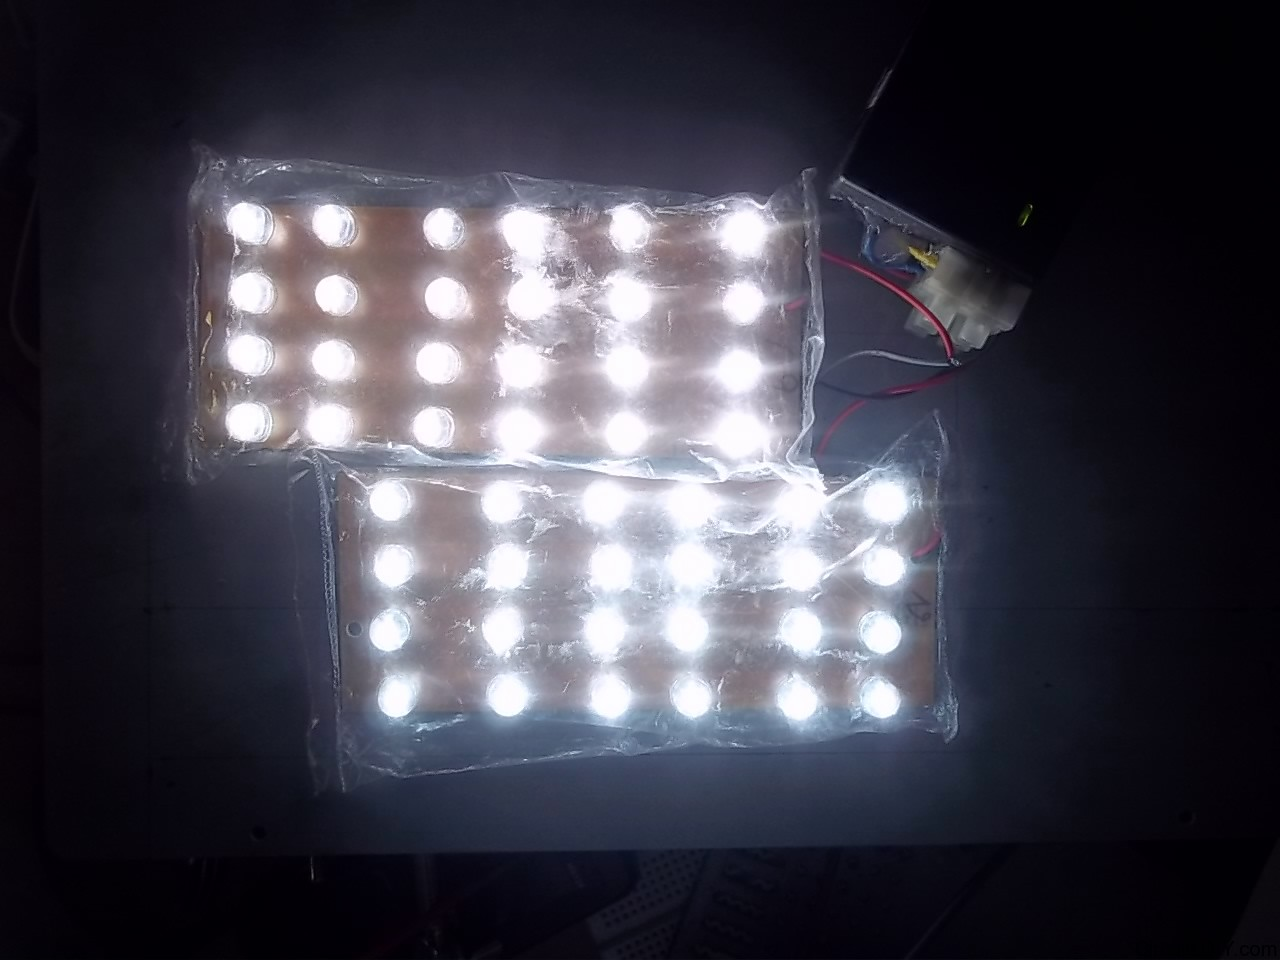 Diy Led Driver For 5watt Leds 12v Strips From 100 240 Vac How To Make A Simplest Compact 1 Watt Circuit At 220v 110v This Is The In Action